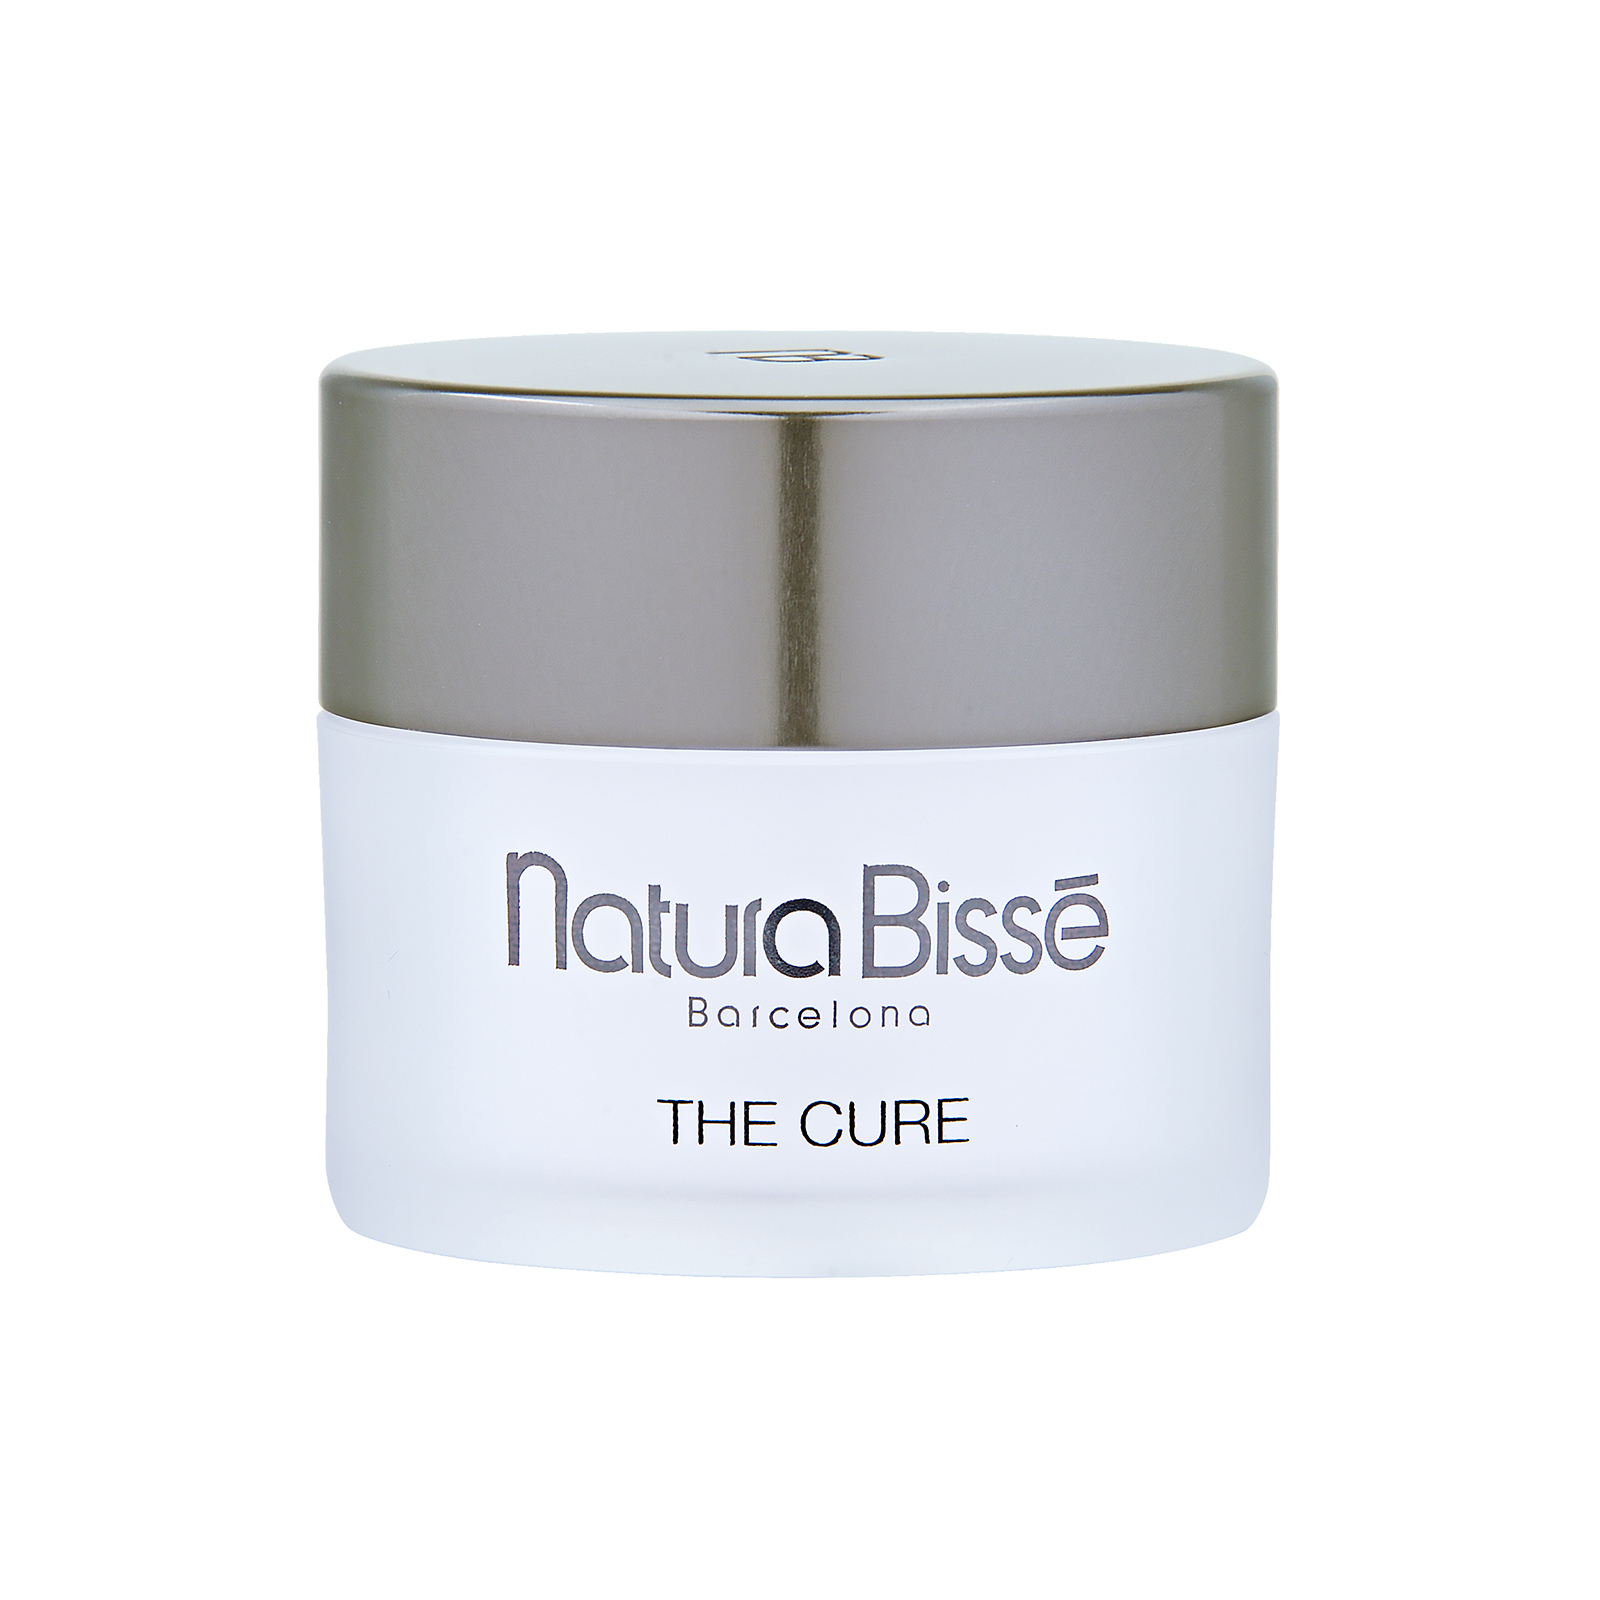 Natura Bisse The Cure Cream Detoxifying Restorative Moisturizer 50ml,